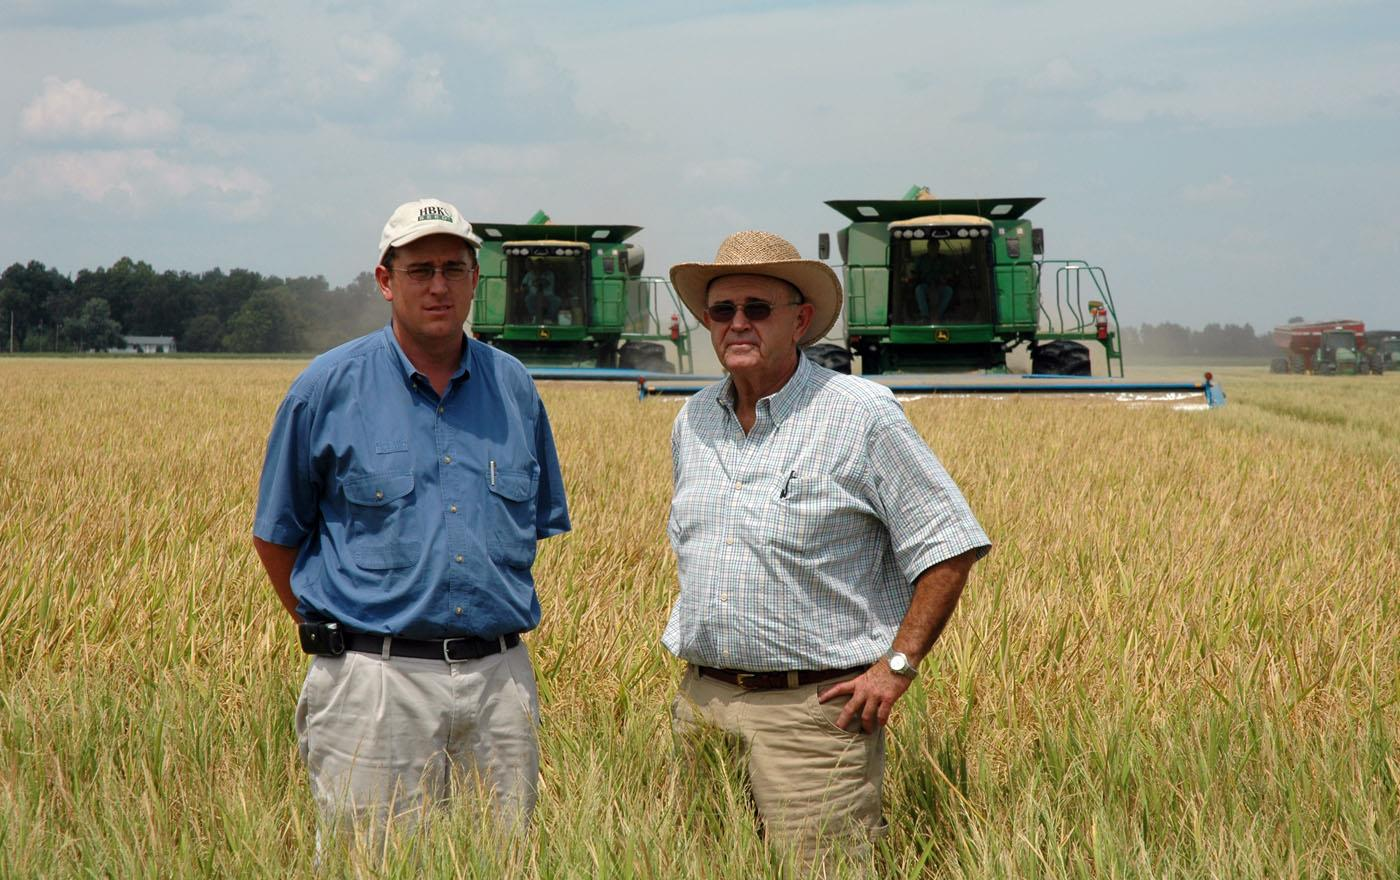 Two white men standing in mature rice field, two green combines in background